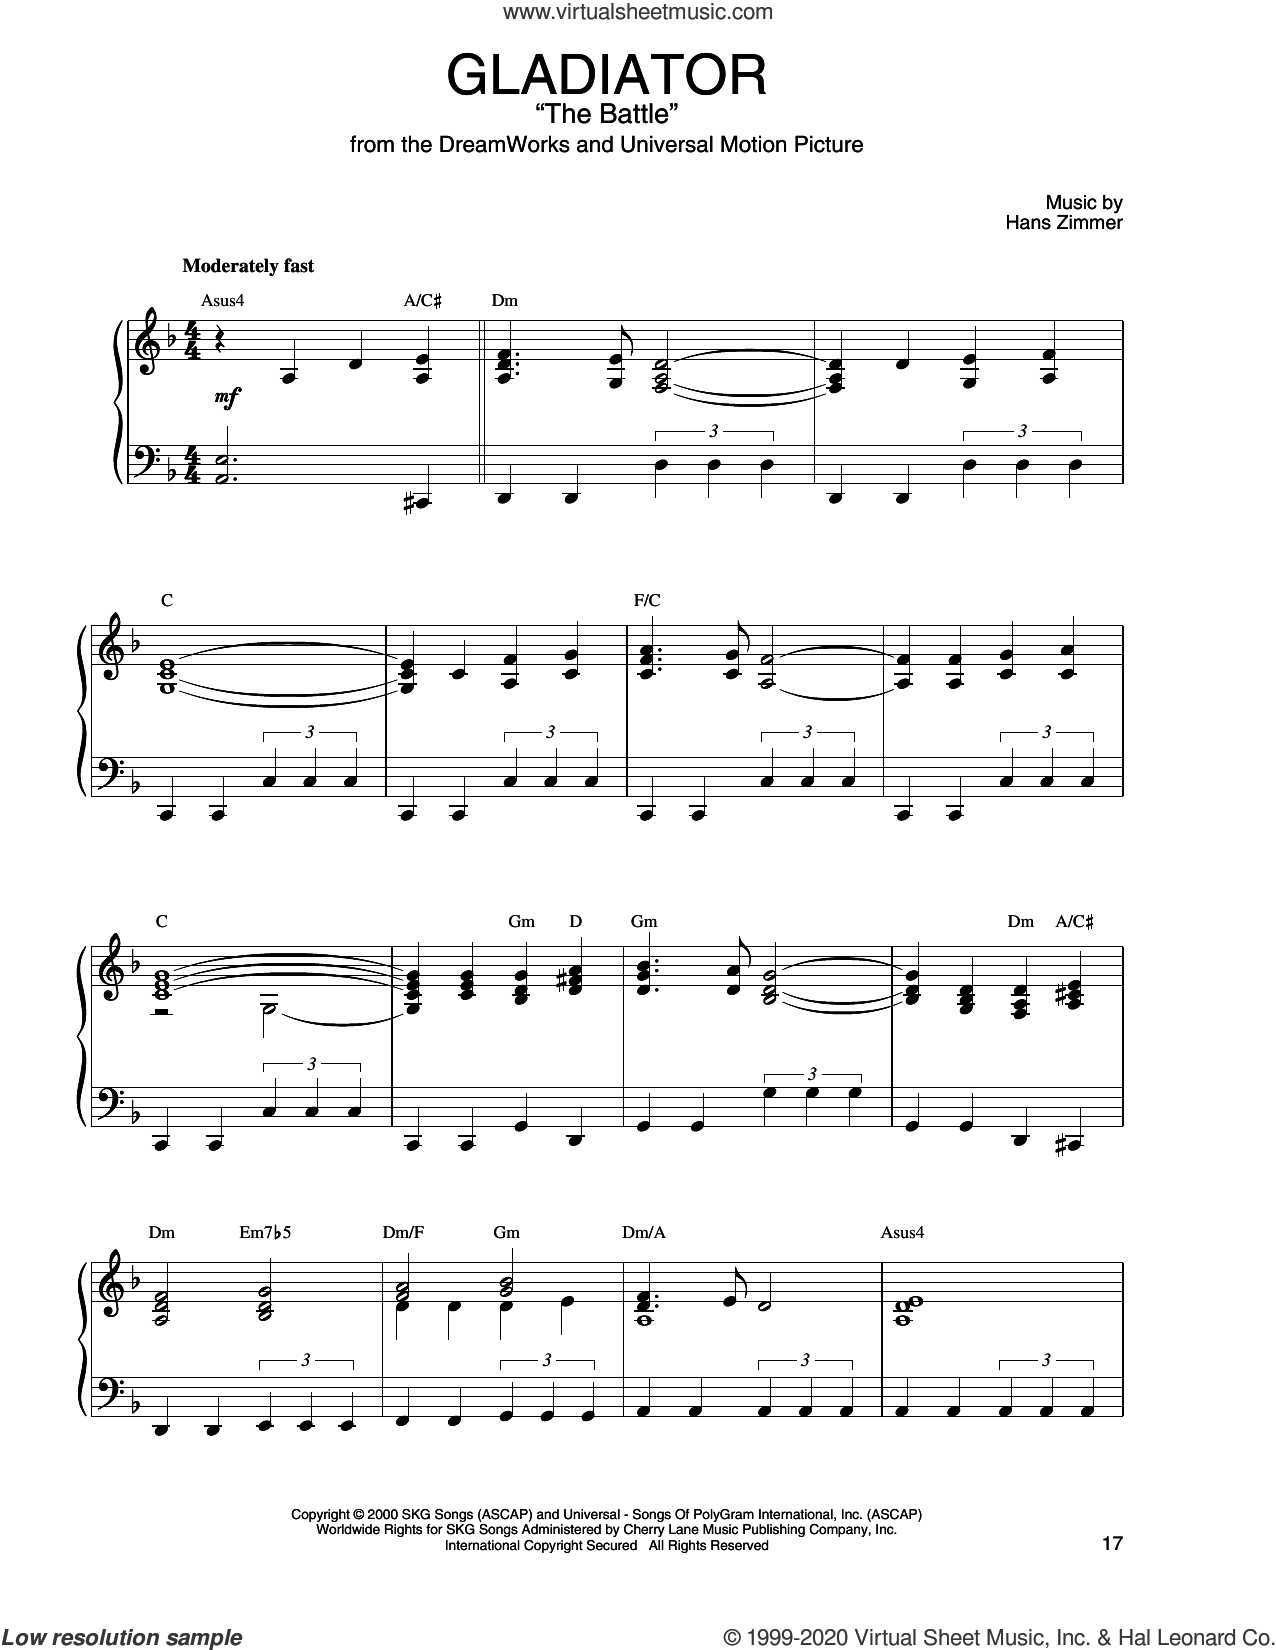 The Battle (from Gladiator) sheet music for piano solo by Hans Zimmer, Hans Zimmer and Lisa Gerrard and Lisa Gerrard, intermediate skill level